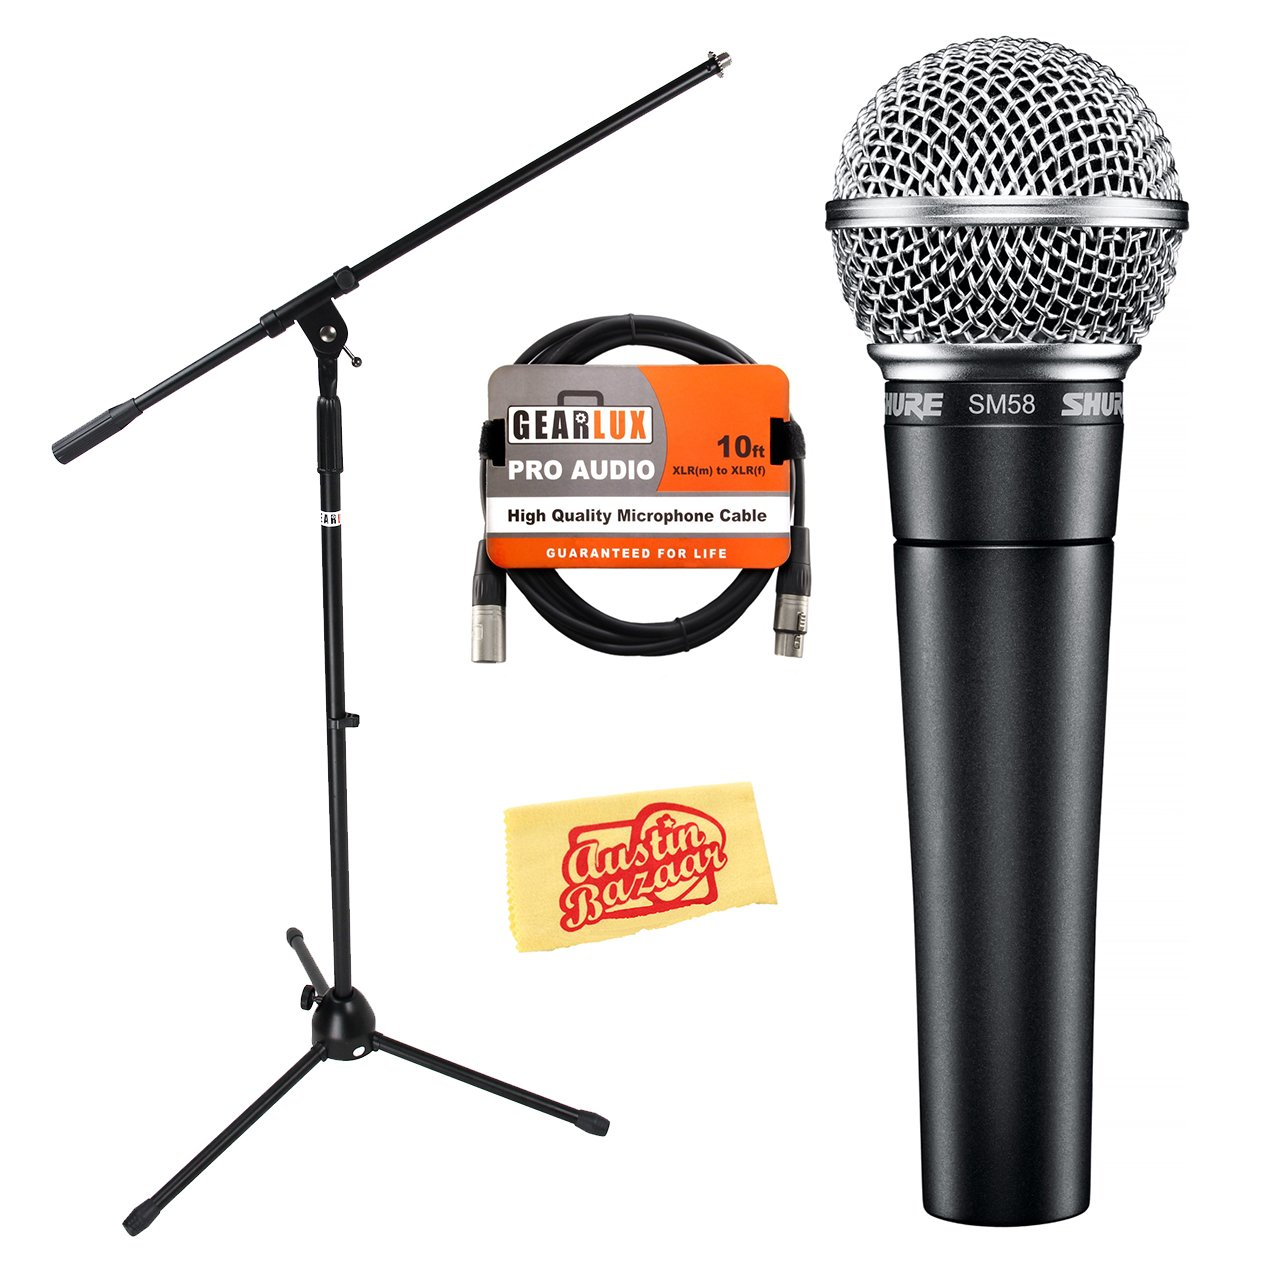 Shure SM58-LC Cardioid Dynamic Vocal Microphone Bundle with Boom Stand, XLR Cable, Polishing Cloth by Shure